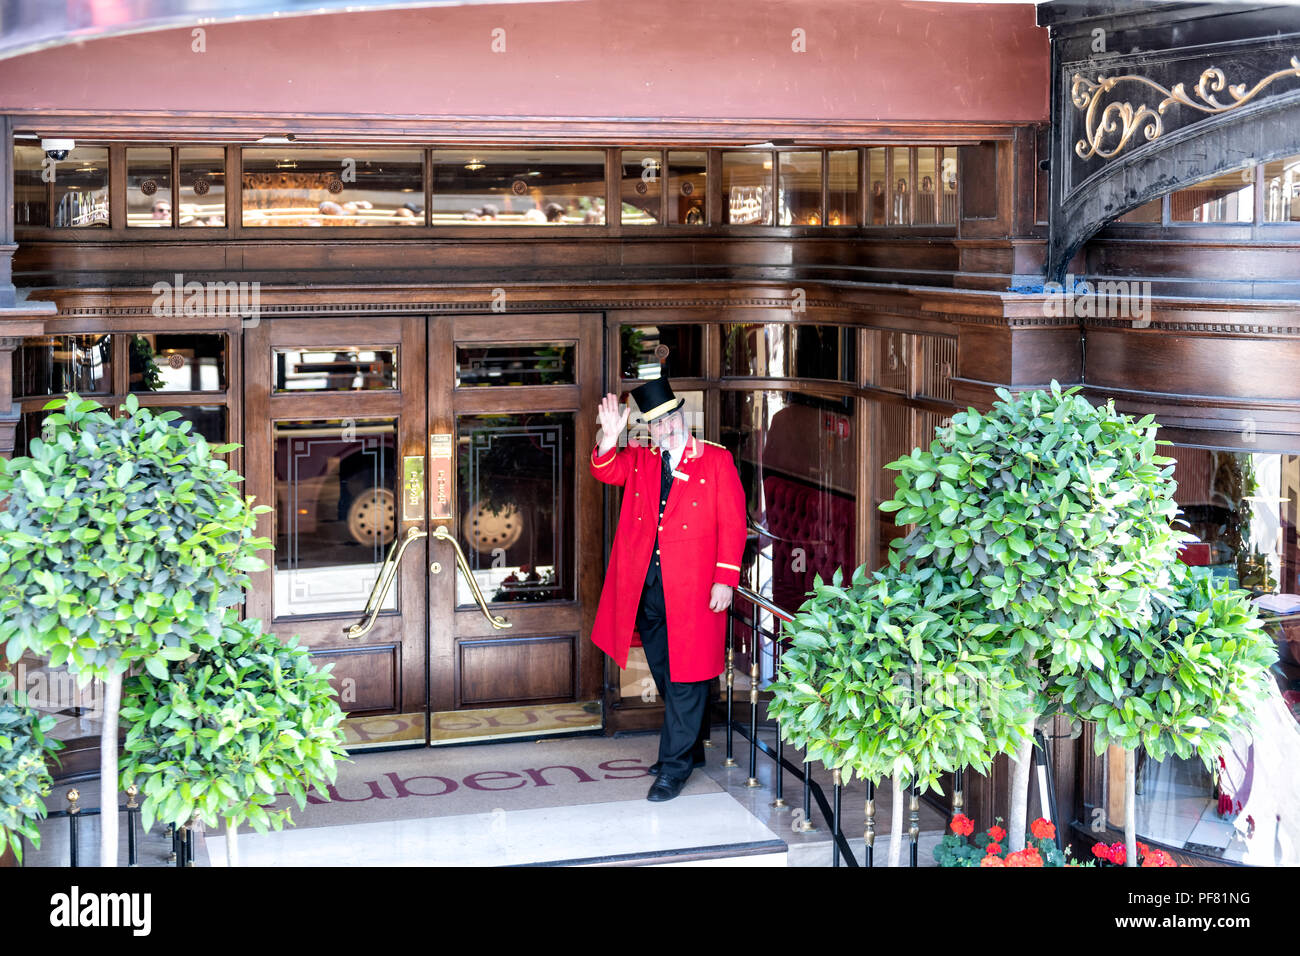 London, UK - June 22, 2018: Porter, doorman in traditional attire, clothing, hat, red gown, coat standing at Rubens hotel, inn entrance waving hand - Stock Image